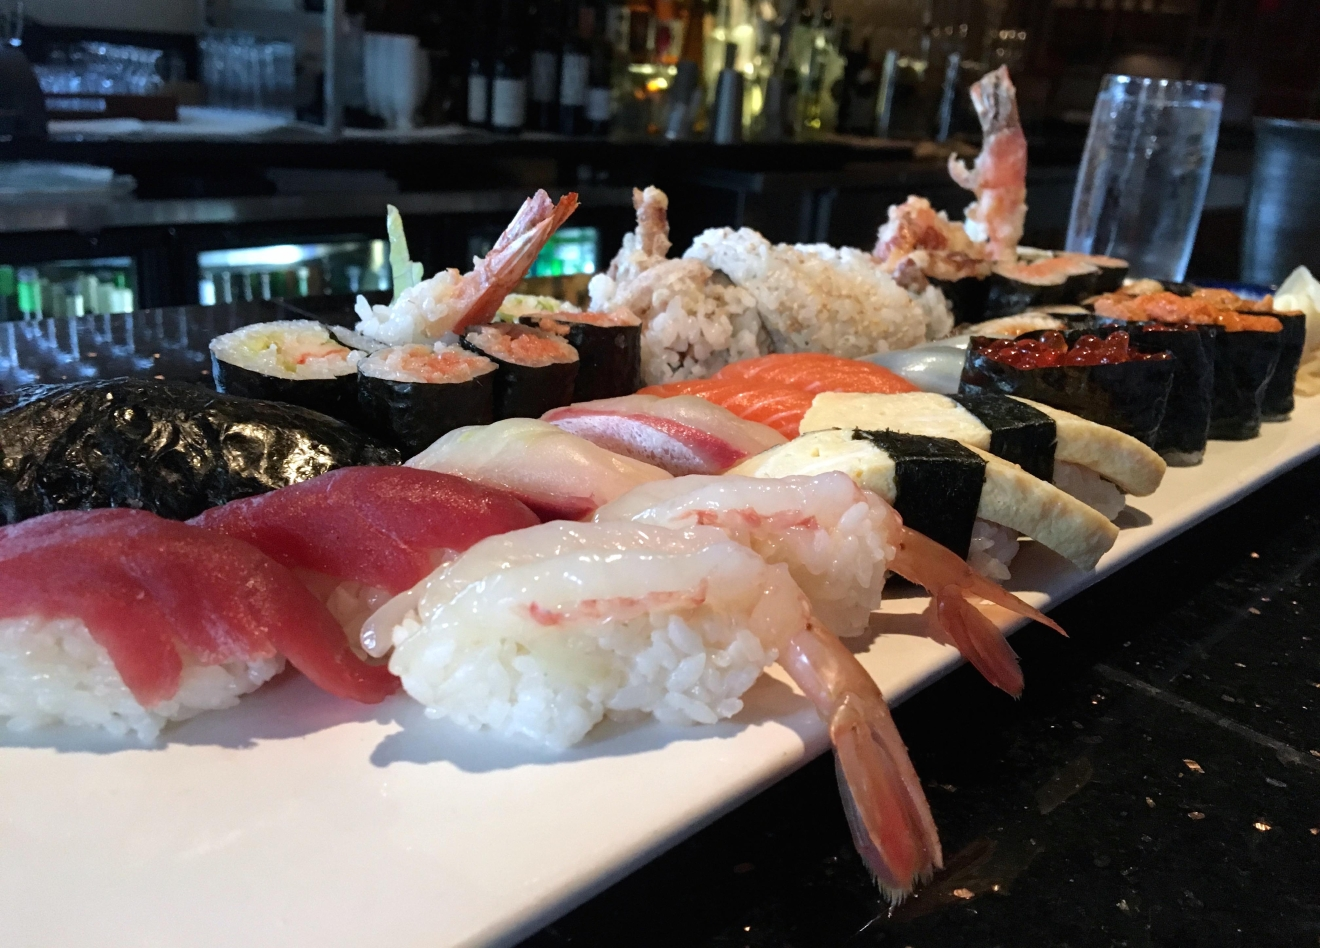 Visit Sushi Taro for happy hour at the 11-seat bar Mon-Friday (5:30-7 p.m.) for an all access pass to the ocean when sushi, sake and beer is half off, save for the occasional exotic urchin. (Image: Laura Hayes)